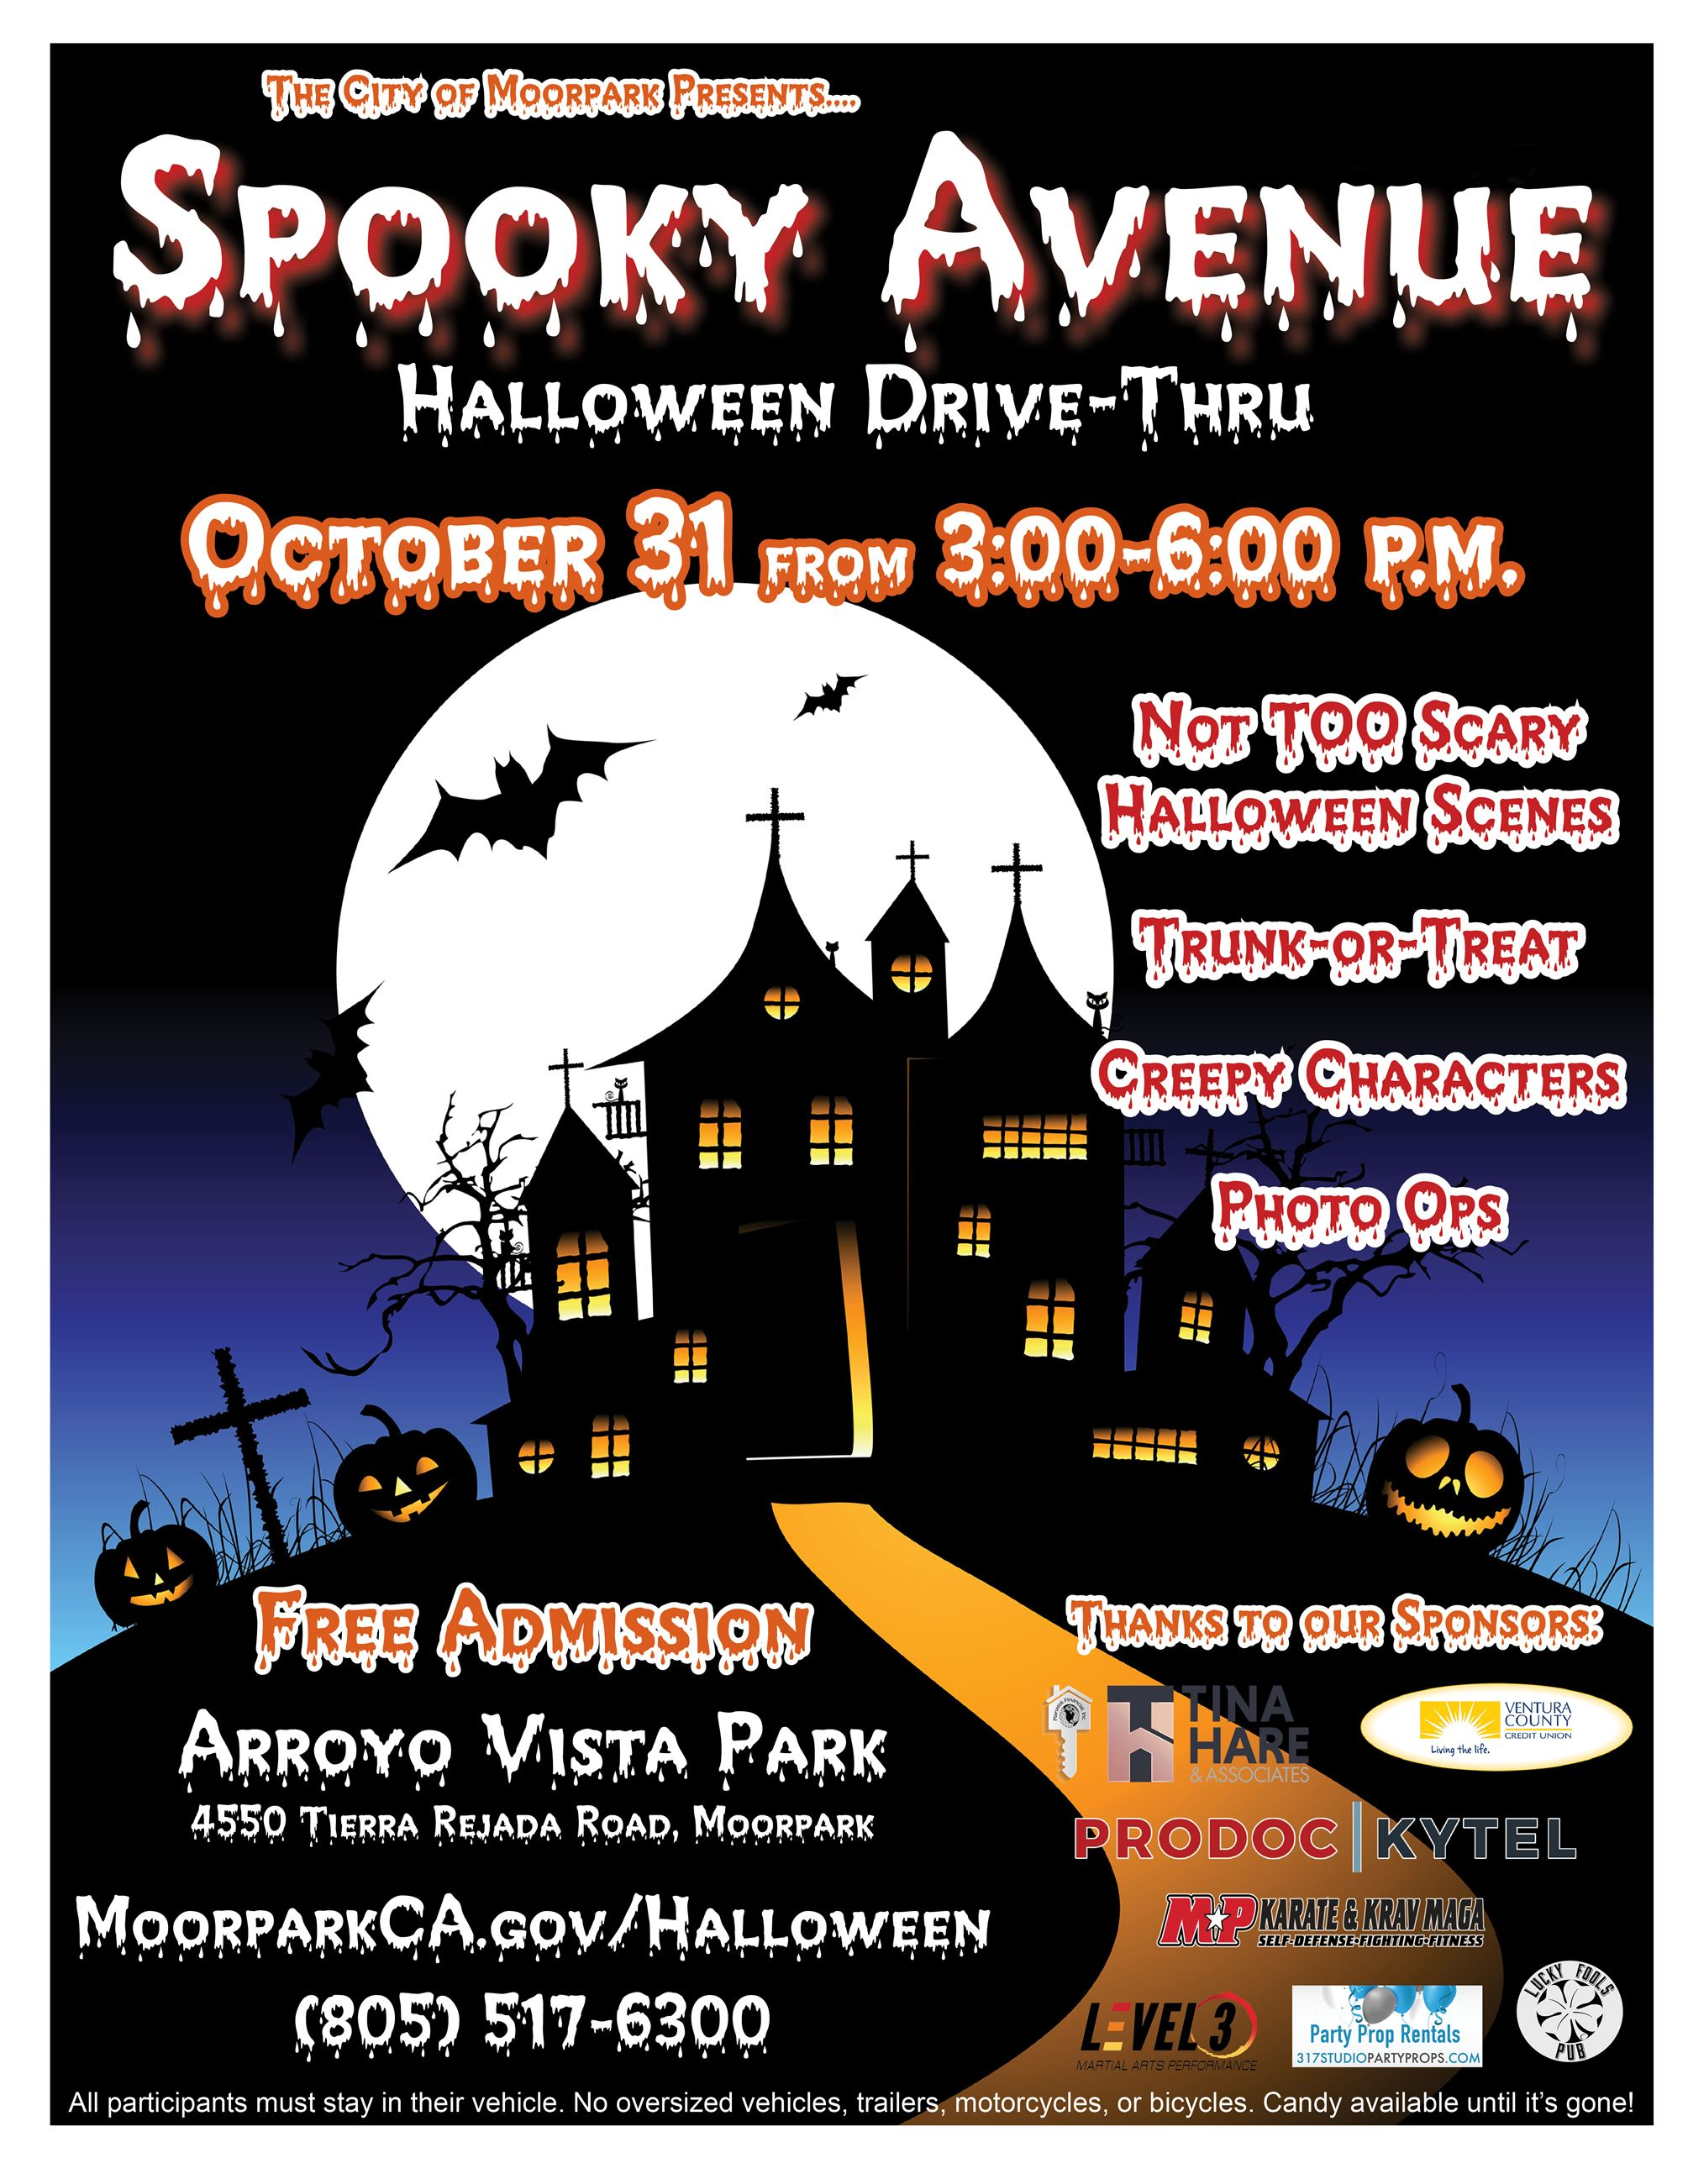 Spooky Avenue Halloween Drive-Thru Event Flyer